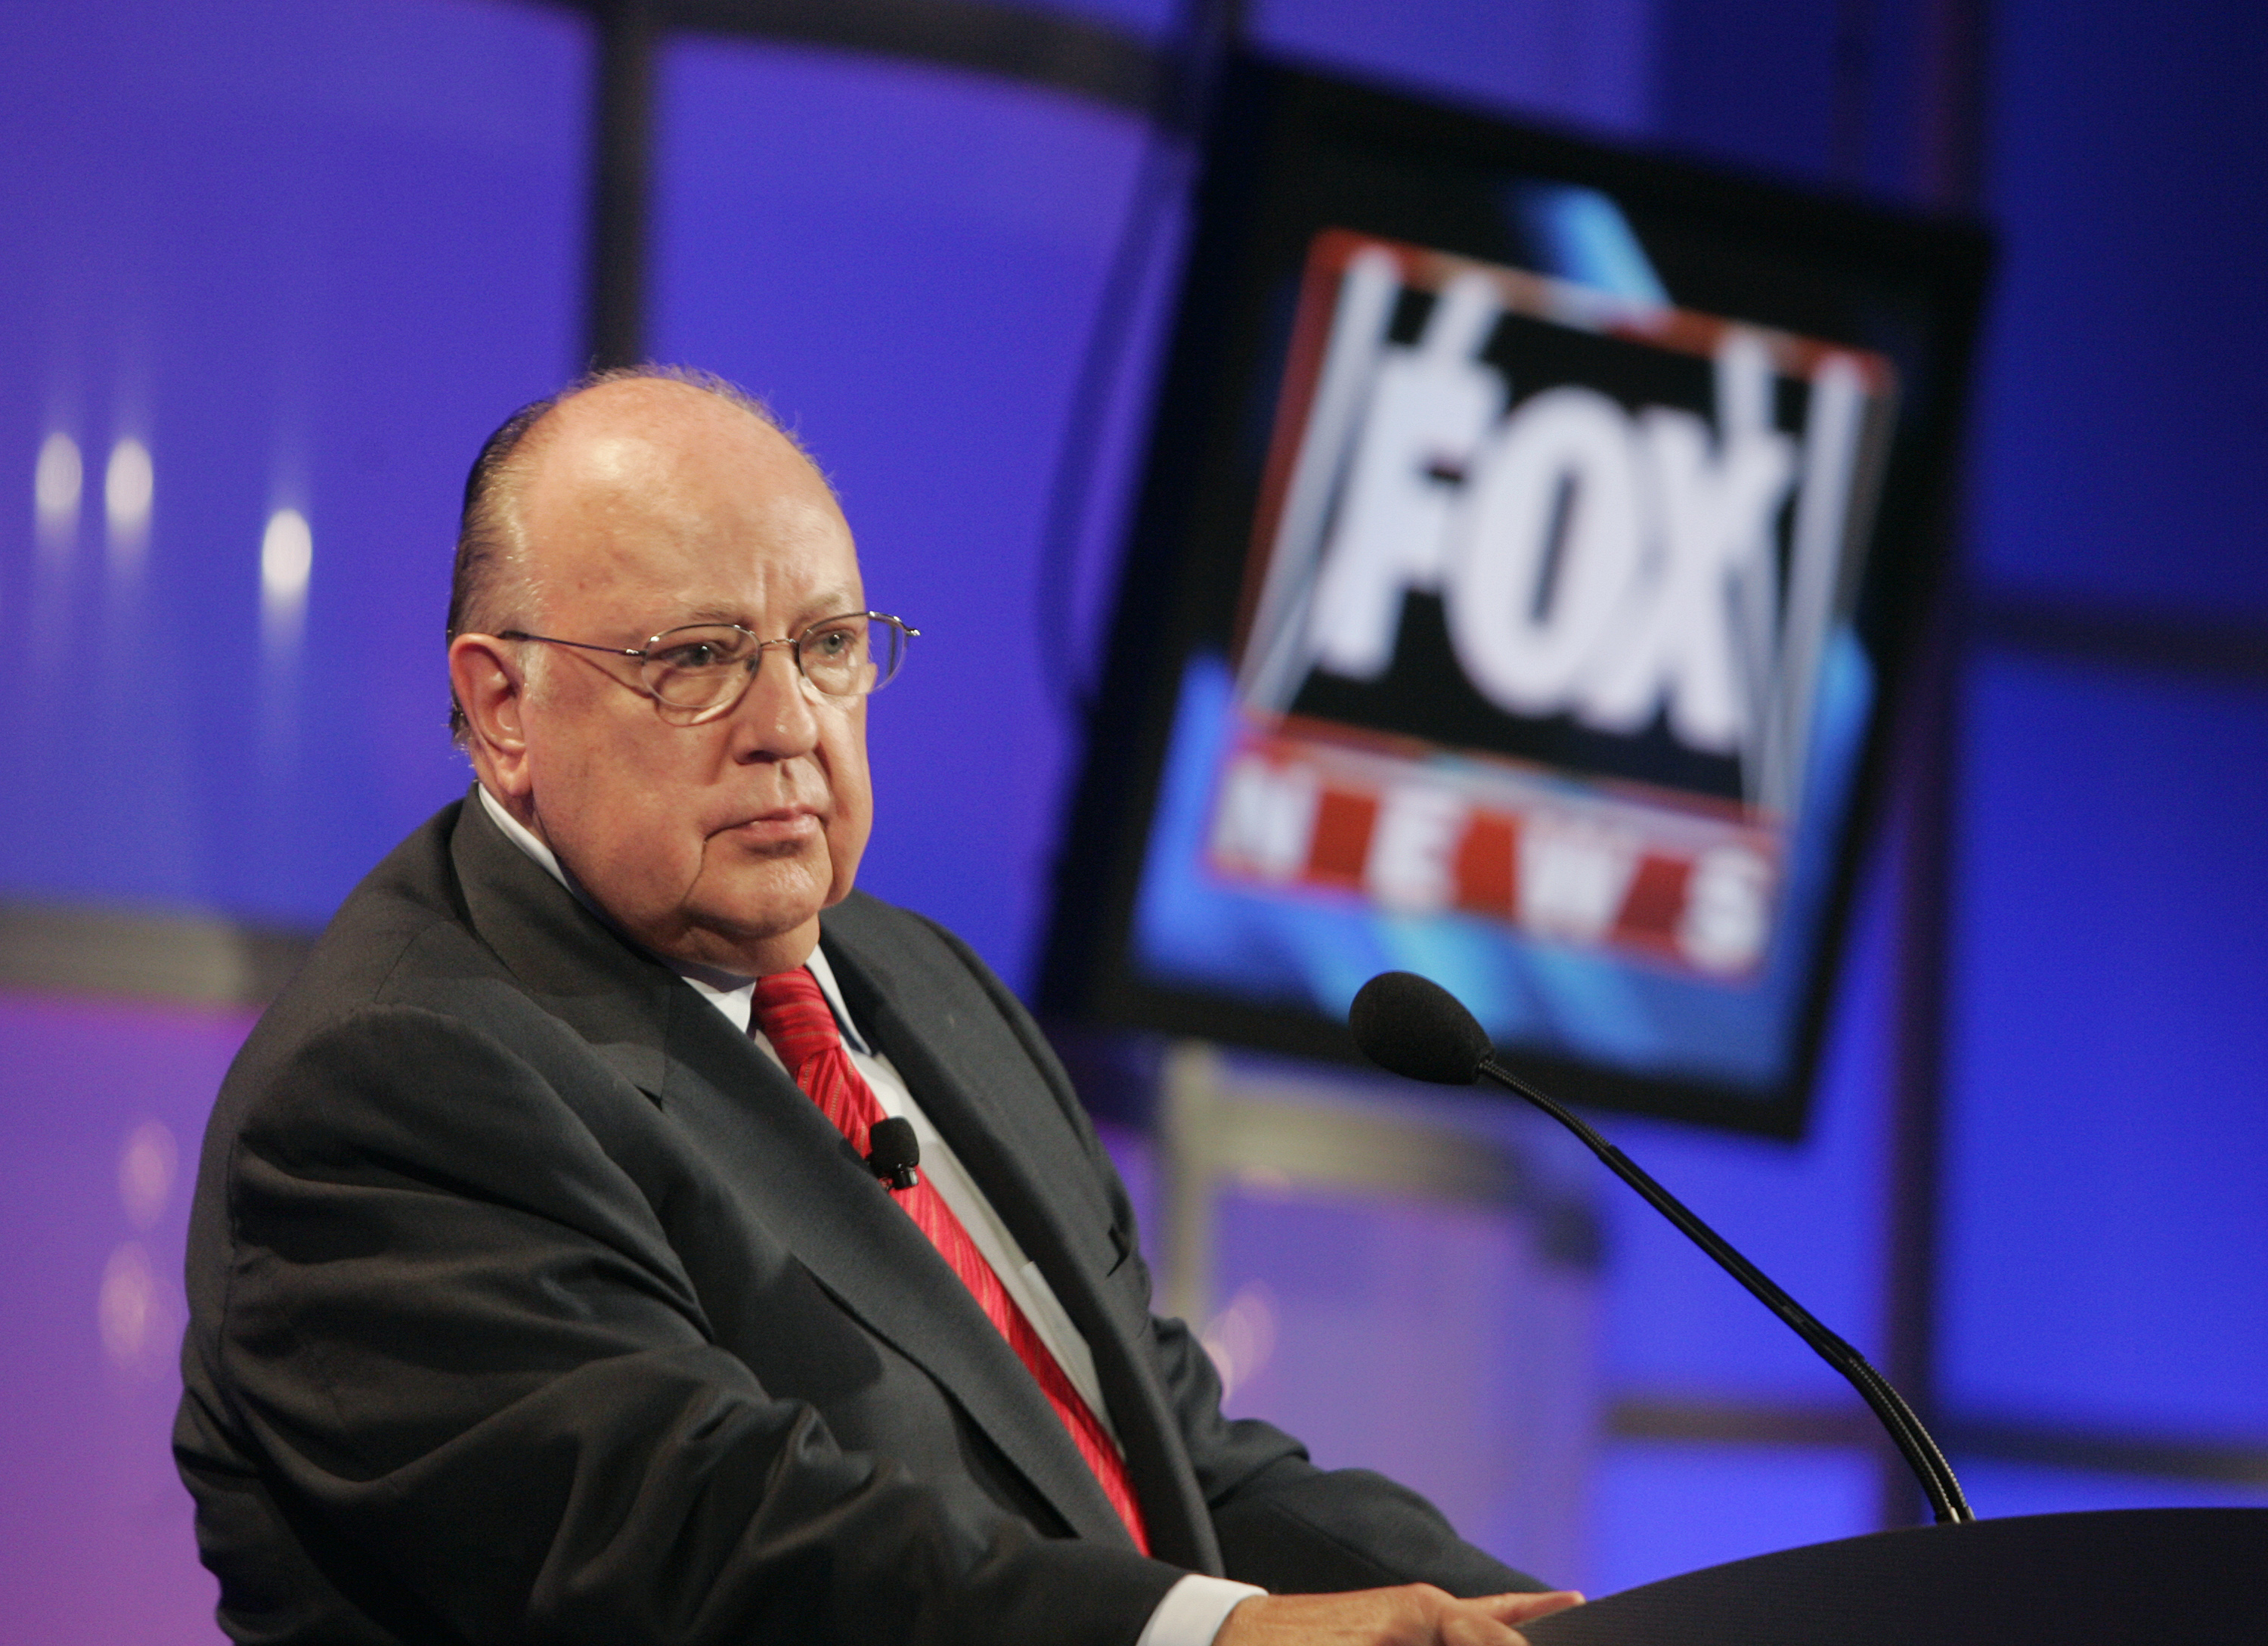 Roger Ailes, chairman and CEO of Fox News attends panel discussion at Television Critics Association summer press tour in Pasadena